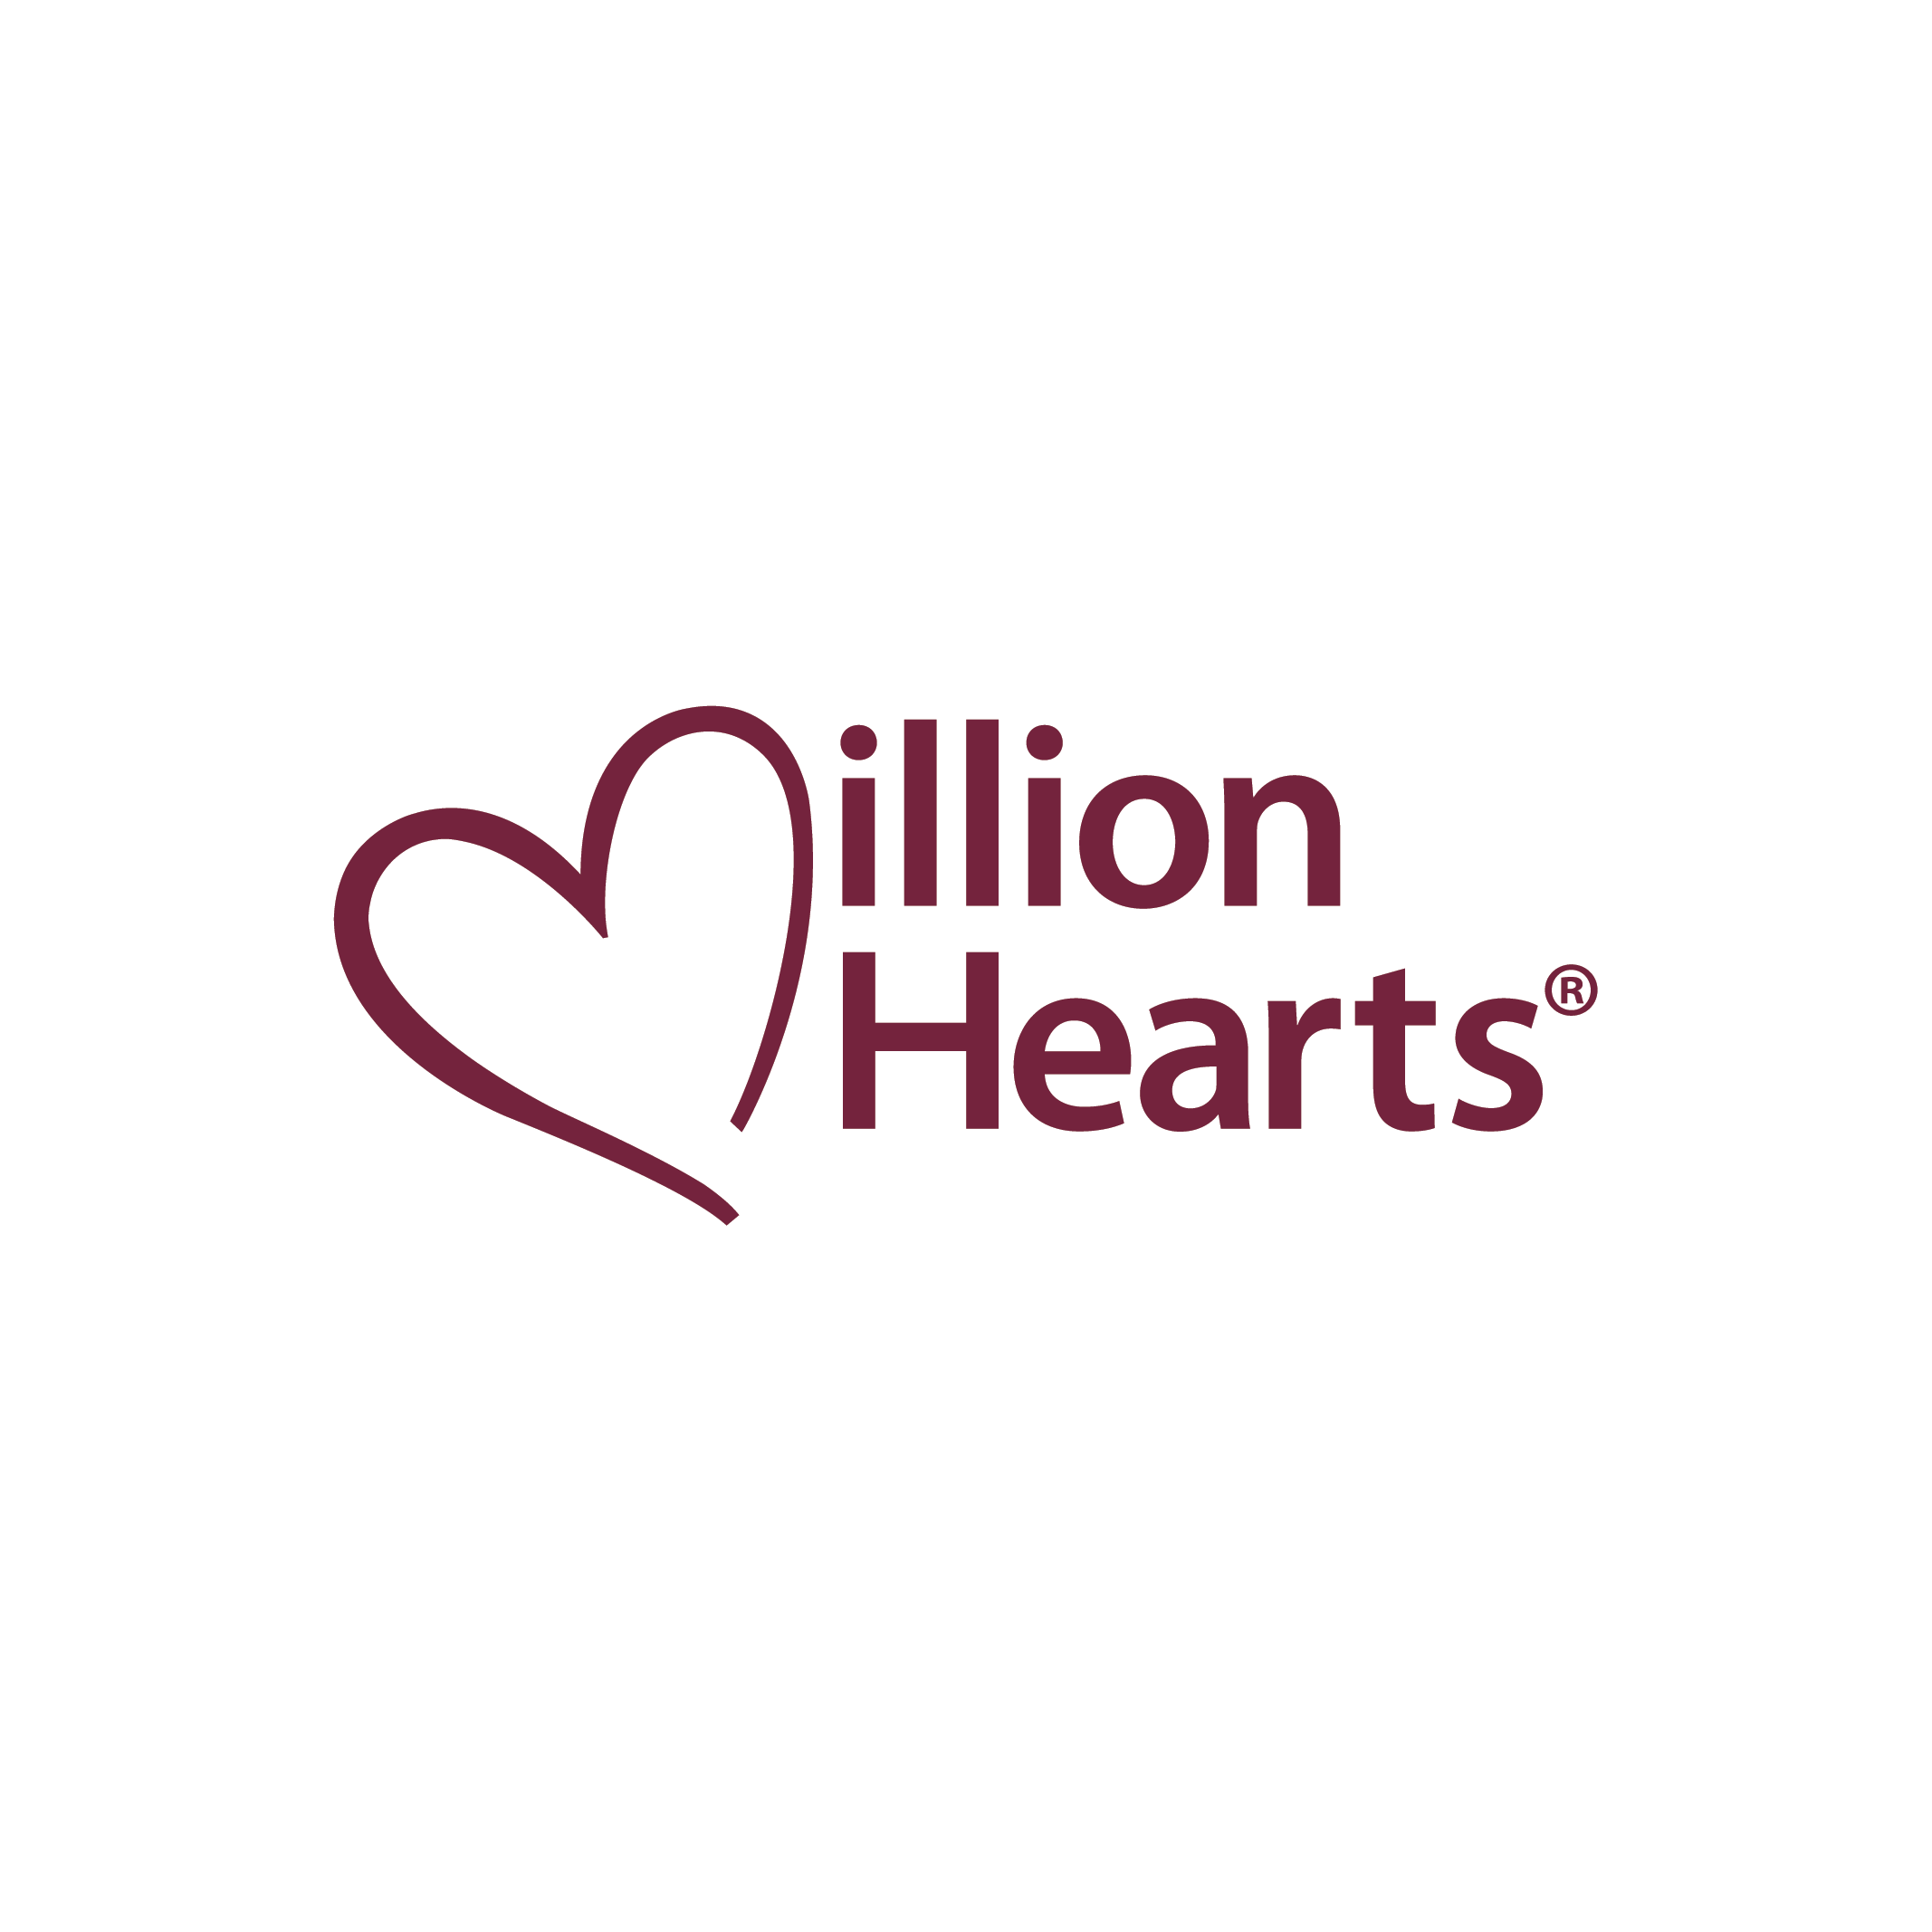 Logos million hearts red text white background png format thecheapjerseys Choice Image